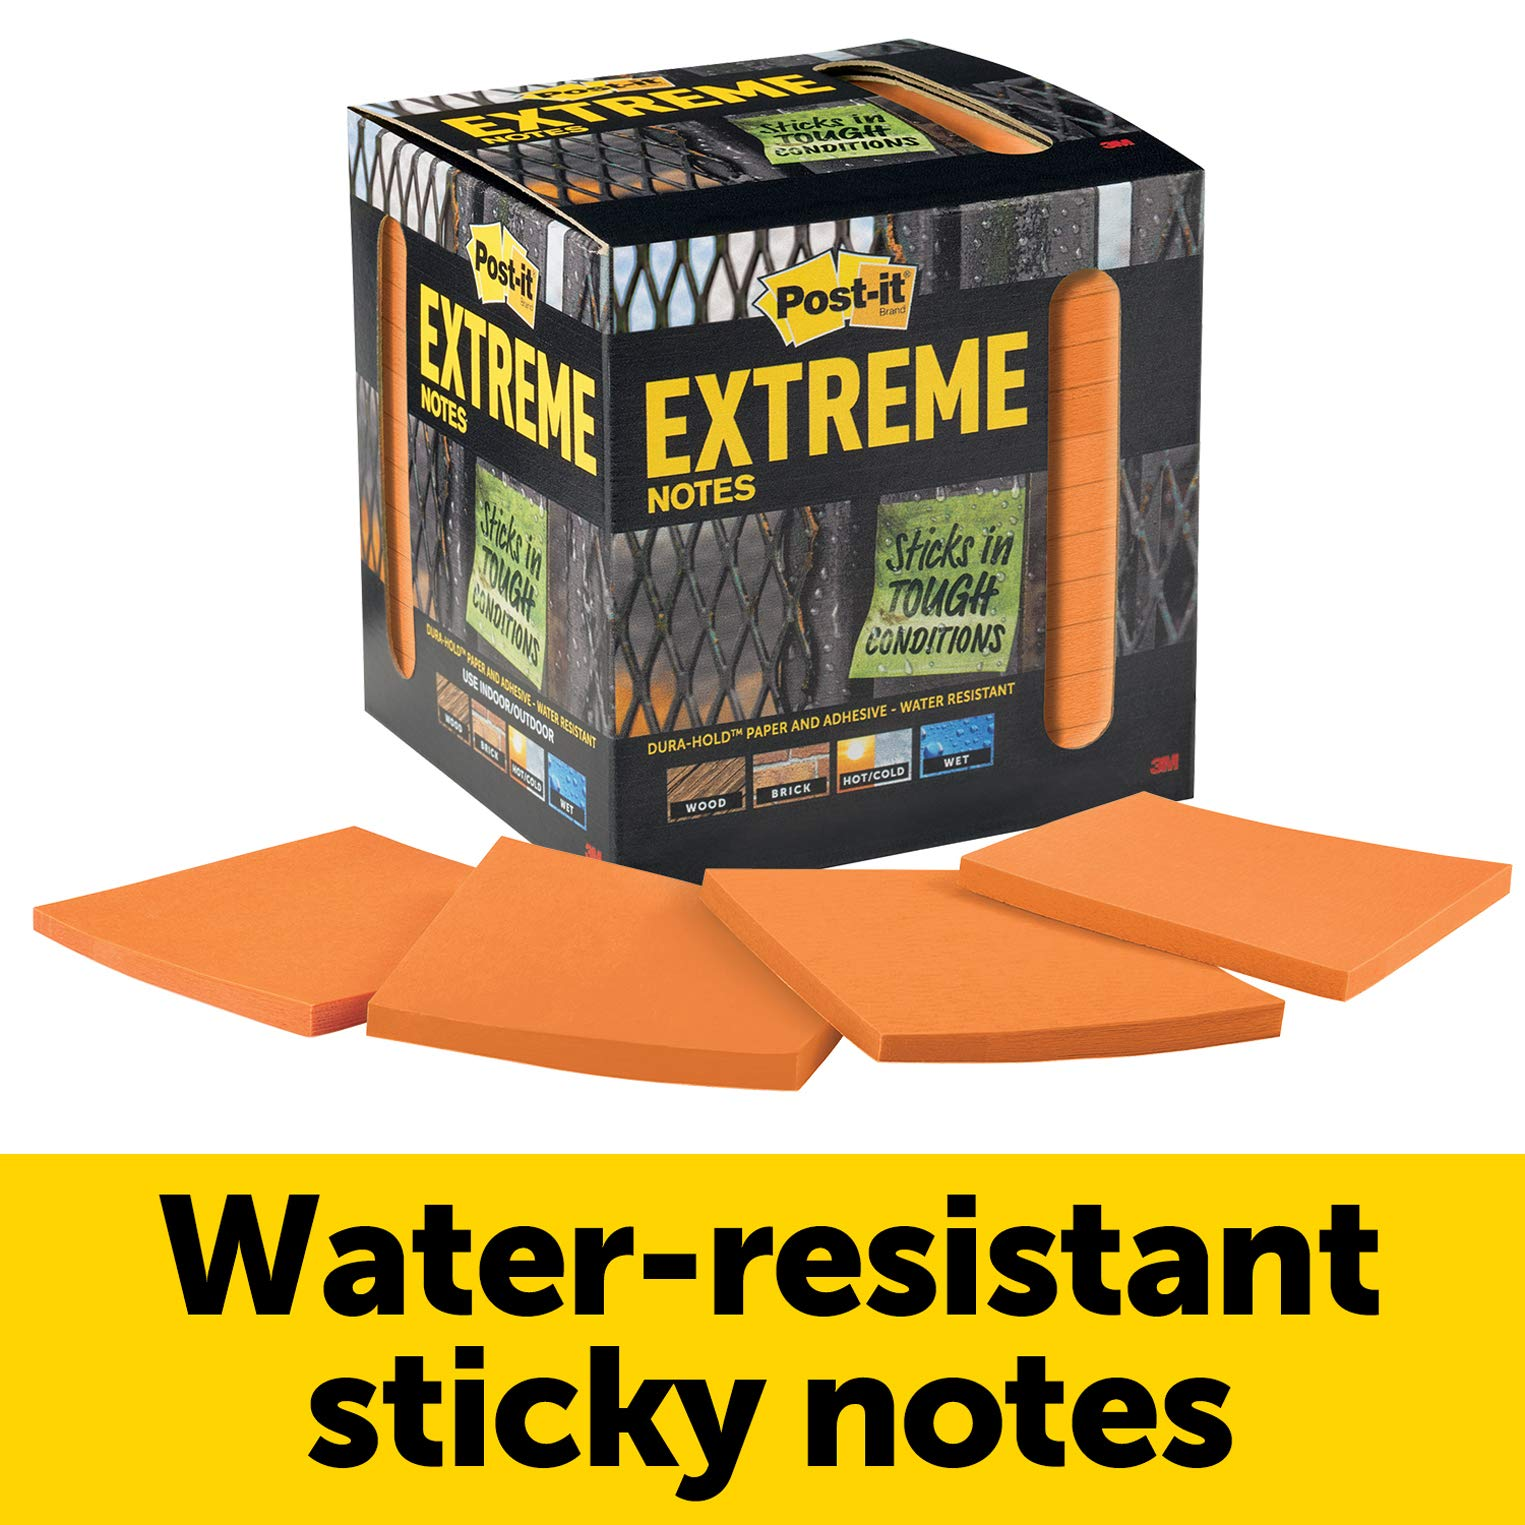 Post-it Extreme Notes, Orange, Water Resistant Sticky Notes, Great for Instructions, Recyclable Box, 3 in x 3 in, 12 Pads/Pack, 45 Sheets/Pad (EXTRM33-12TRYO)